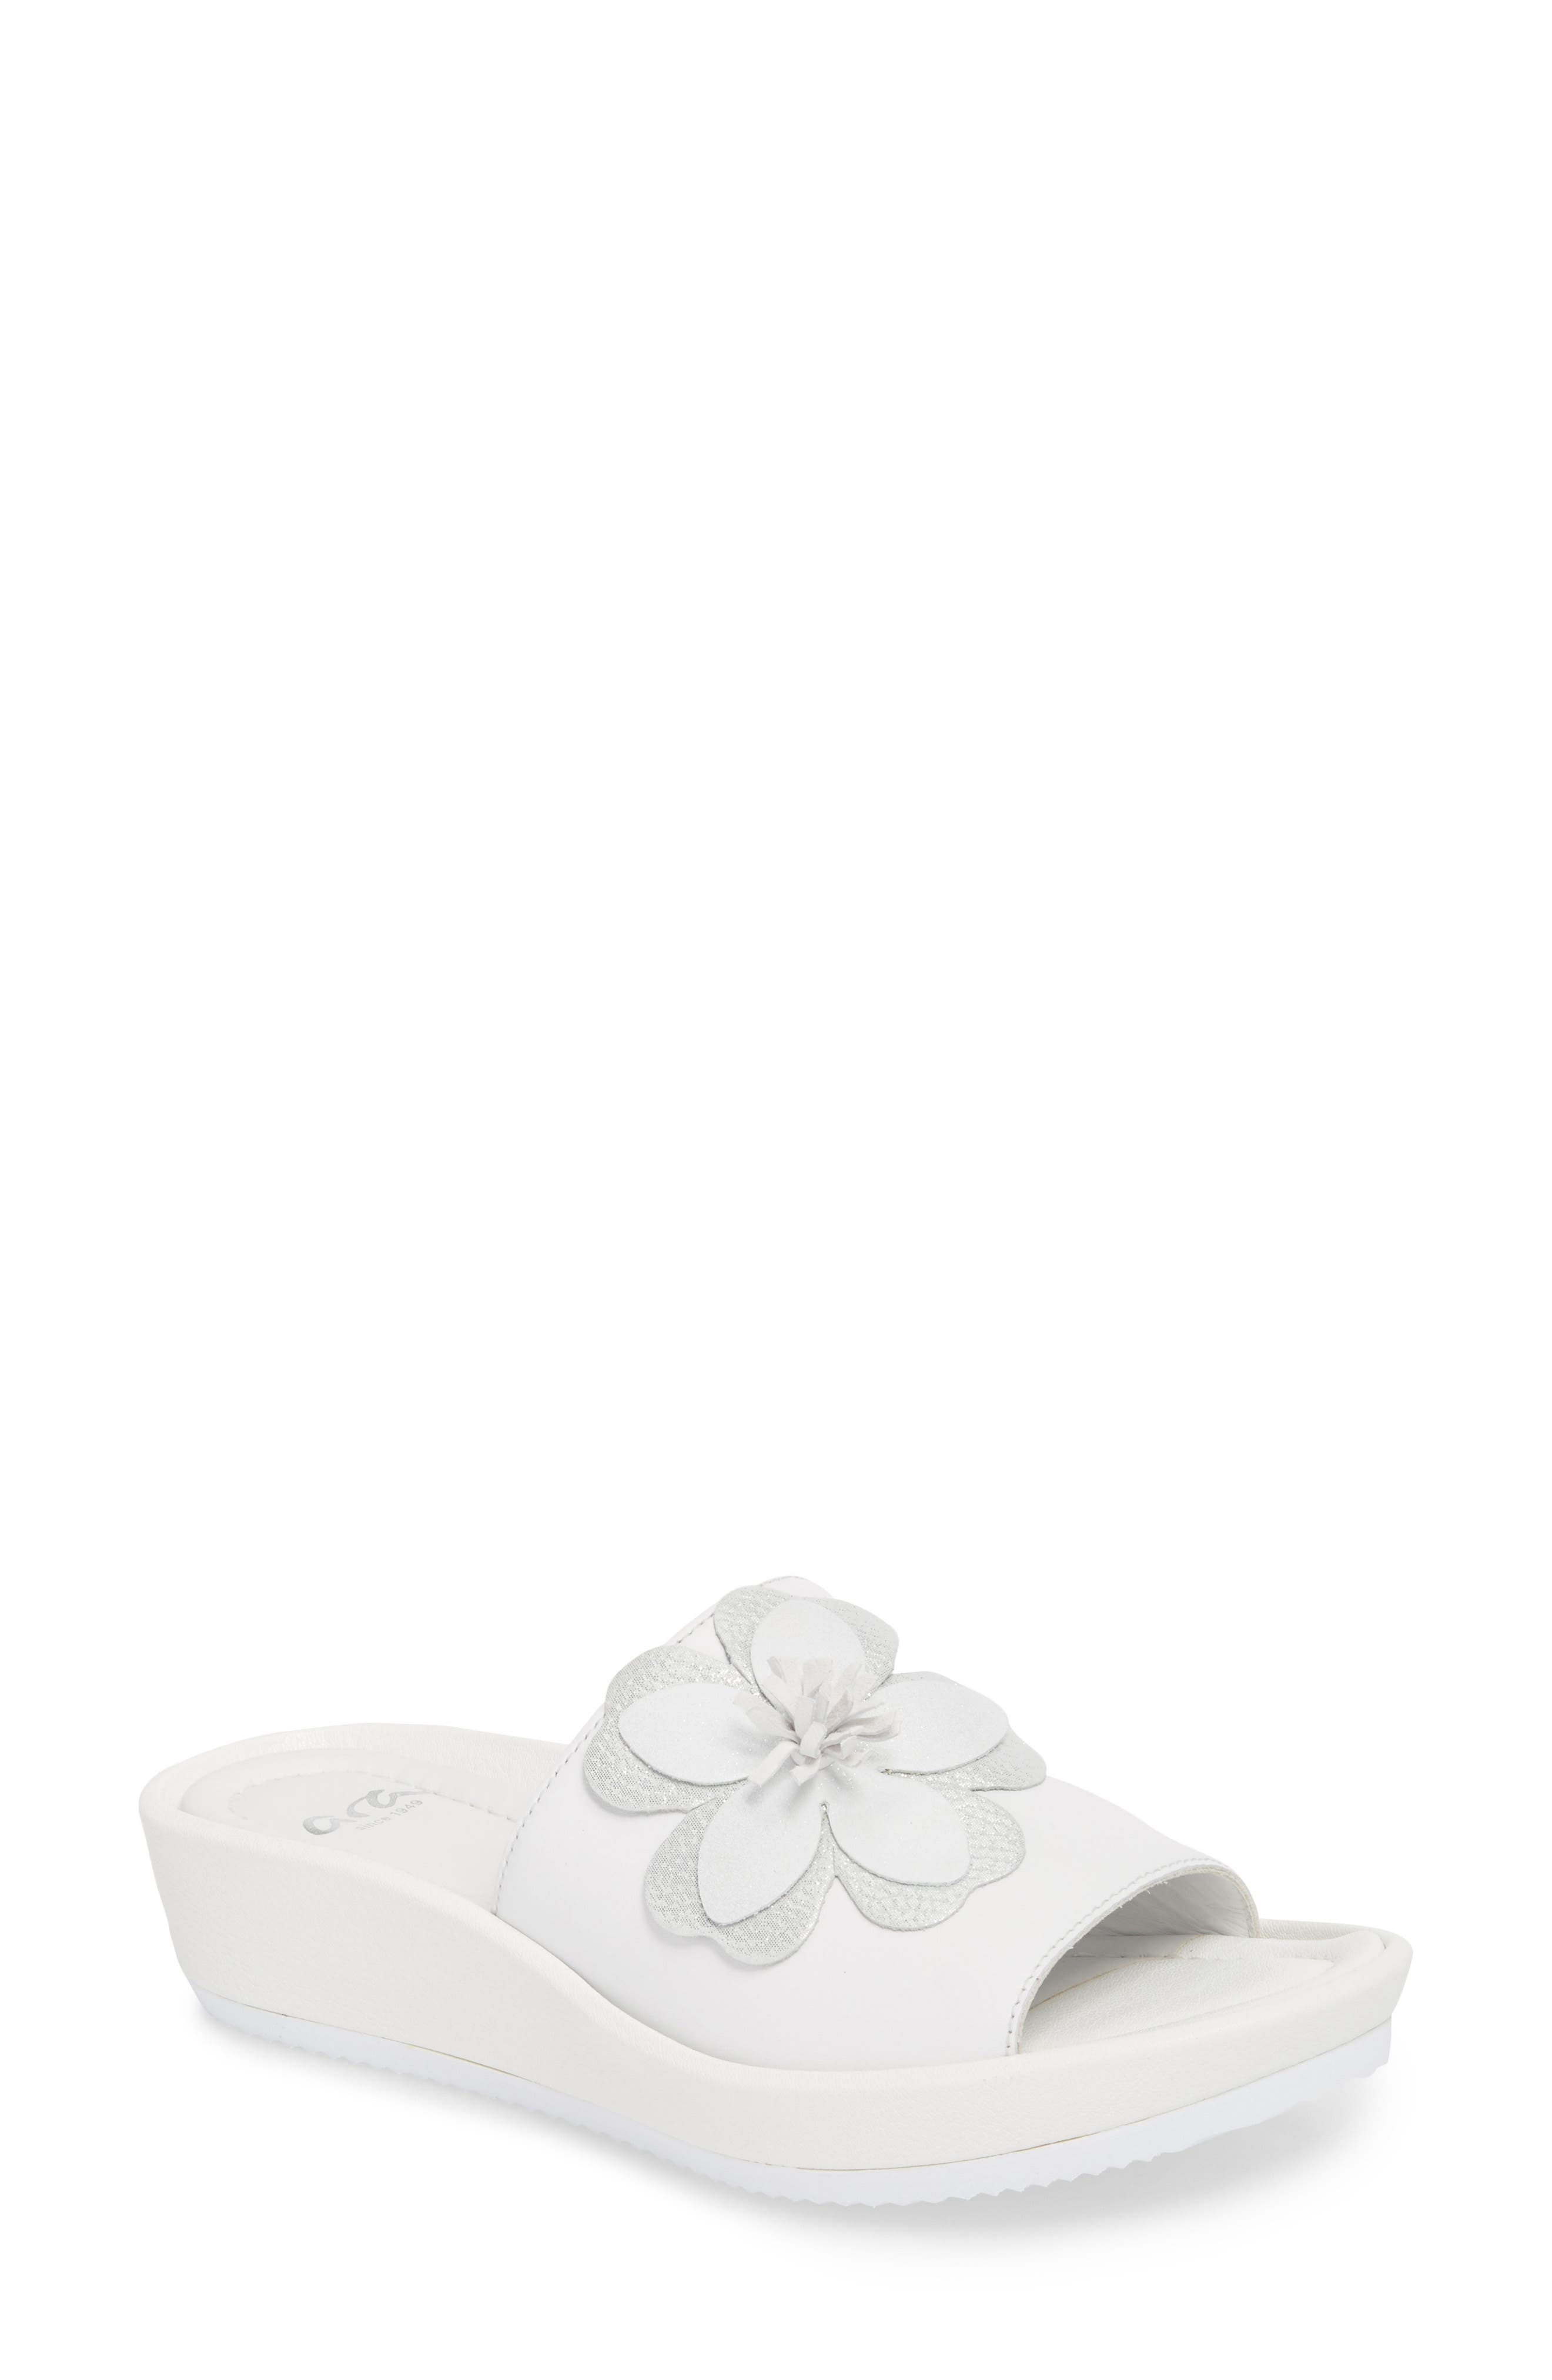 Thea Wedge Slide Sandal,                         Main,                         color, WHITE LEATHER